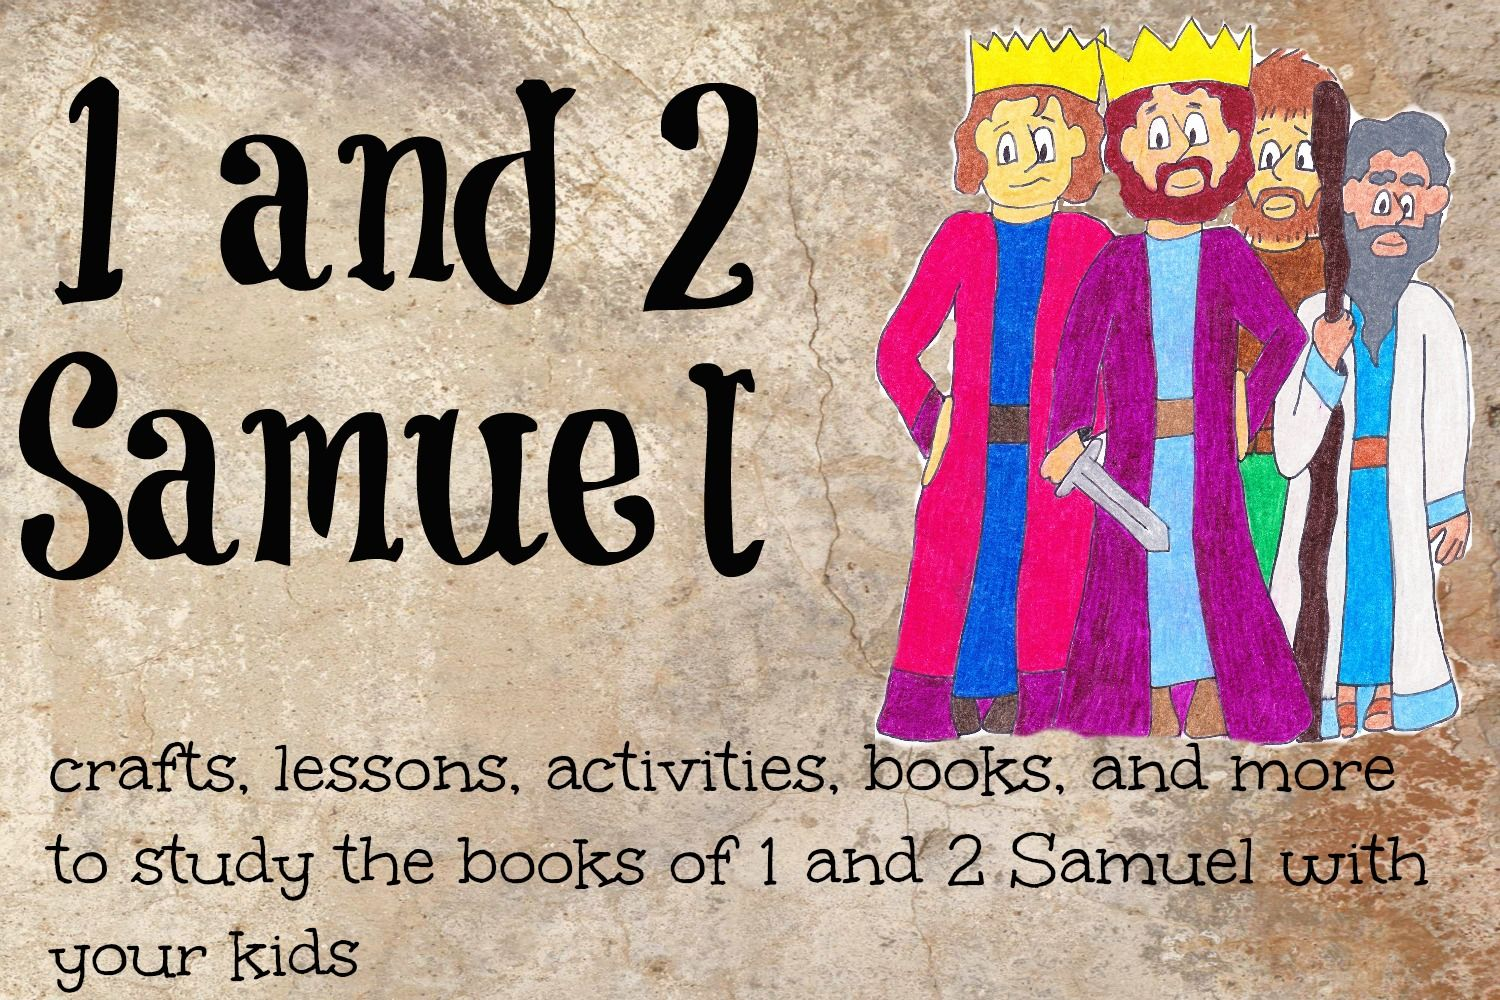 1 And 2 Samuel Activities And Crafts To Do With Your Kids